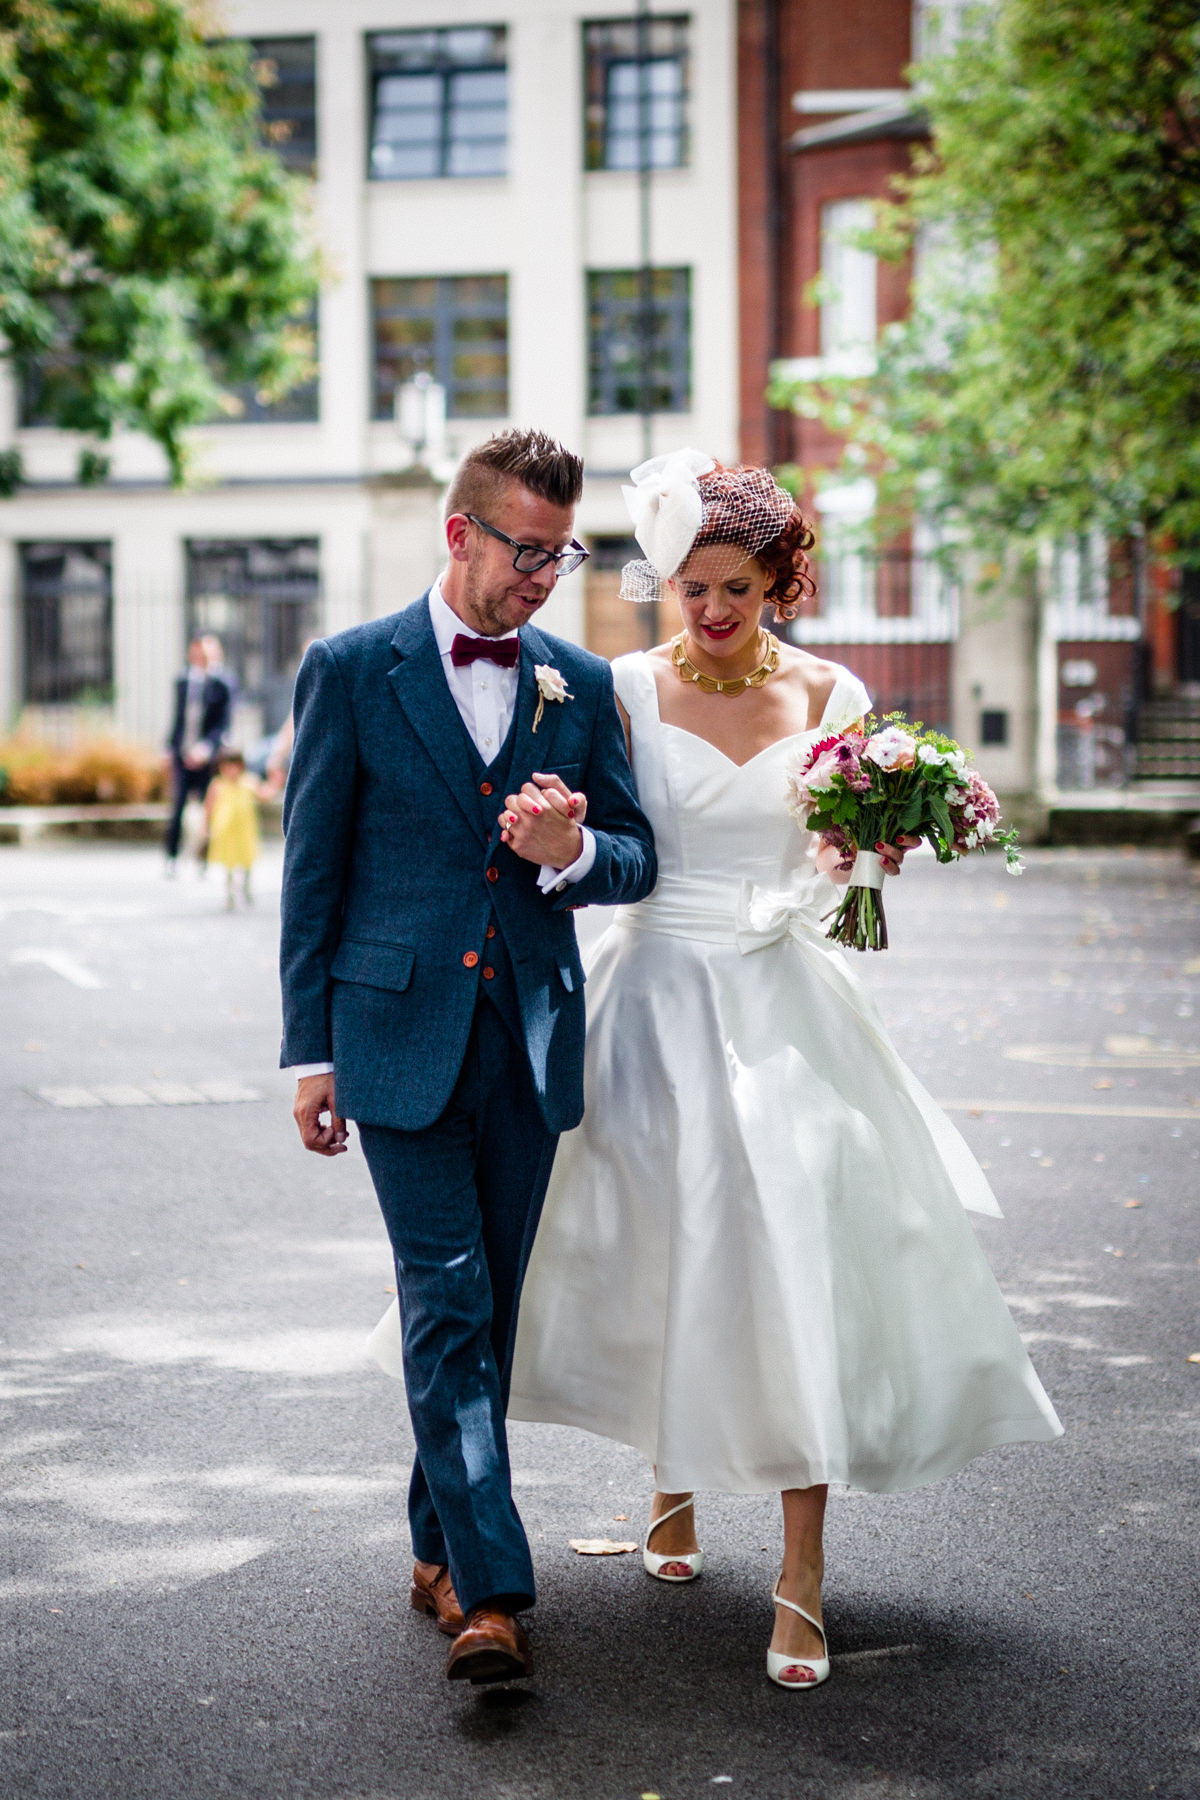 Stoke Newington Town Hall wedding Londesborough Pub EG Michael Stanton Photography 18